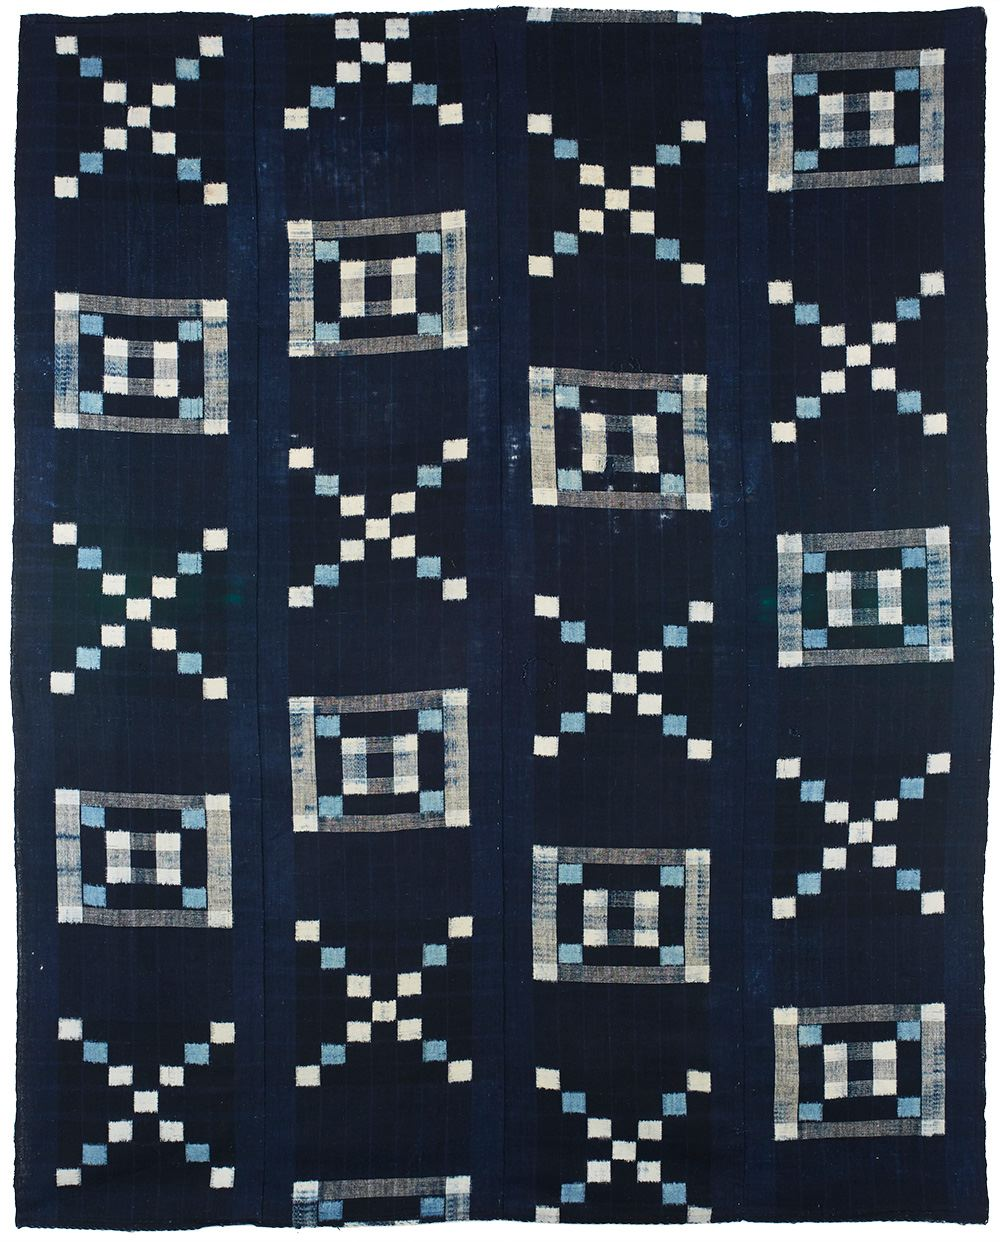 Japanese Textiles    Futon Cover  , 20th century Indigo dye/cotton 62.5 x 50 in(158.8 x 127.0 cm) JTex 71